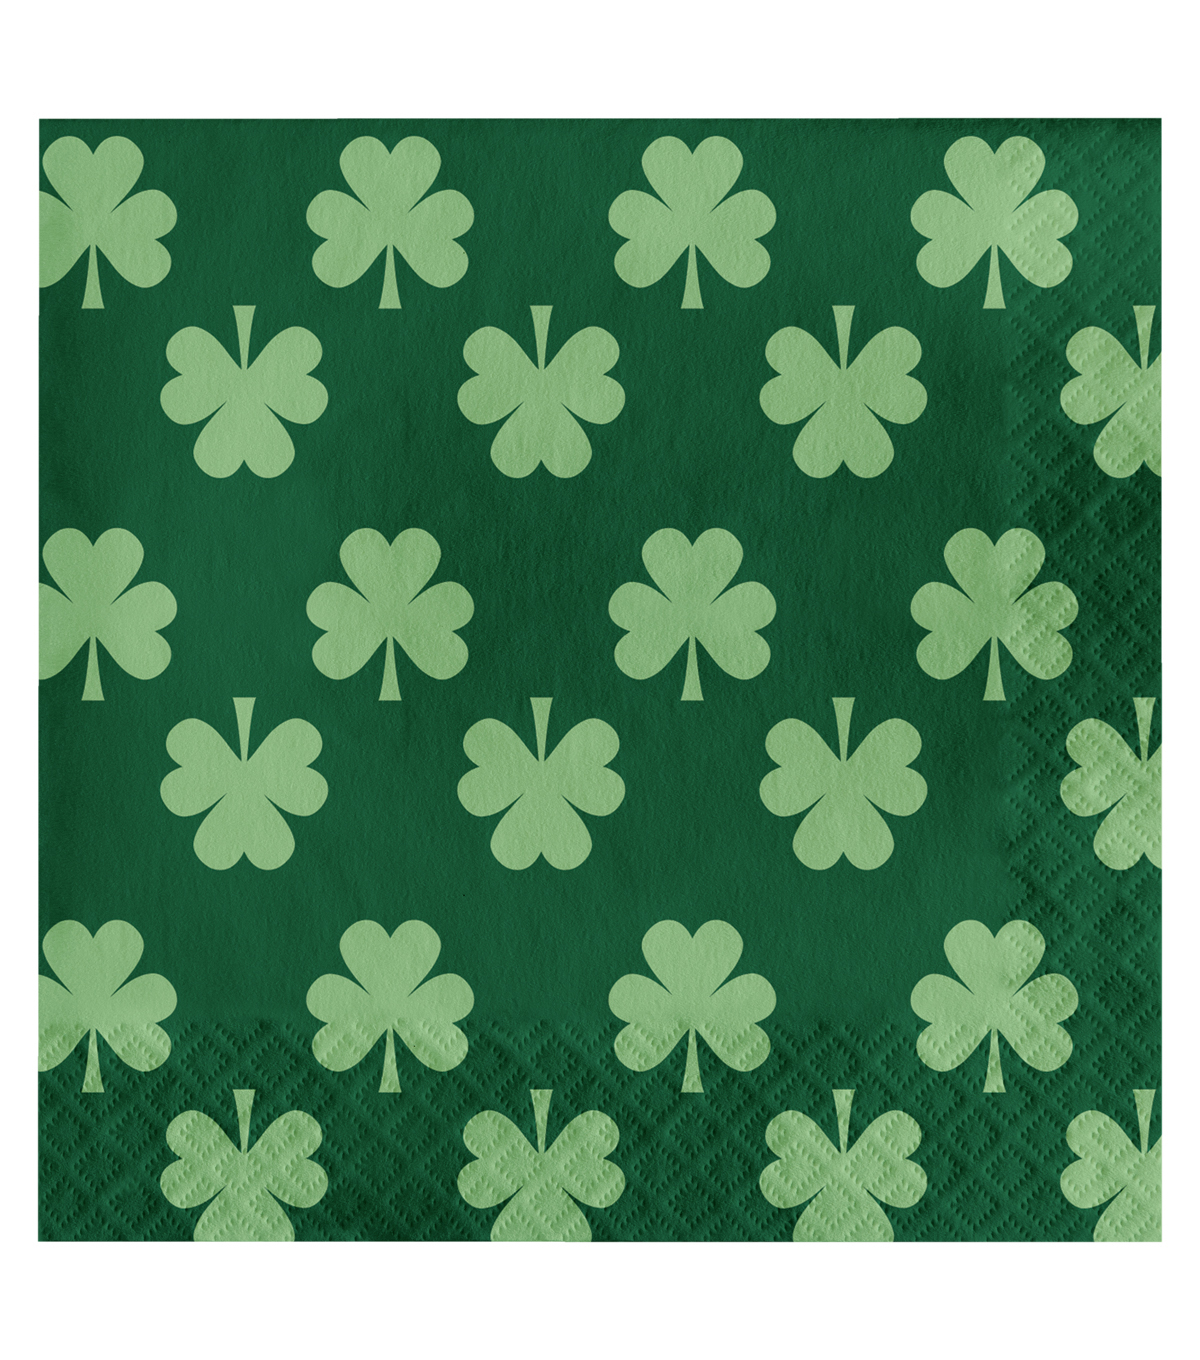 St. Patrick\u0027s Day Pack of 20 Paper Lunch Napkins